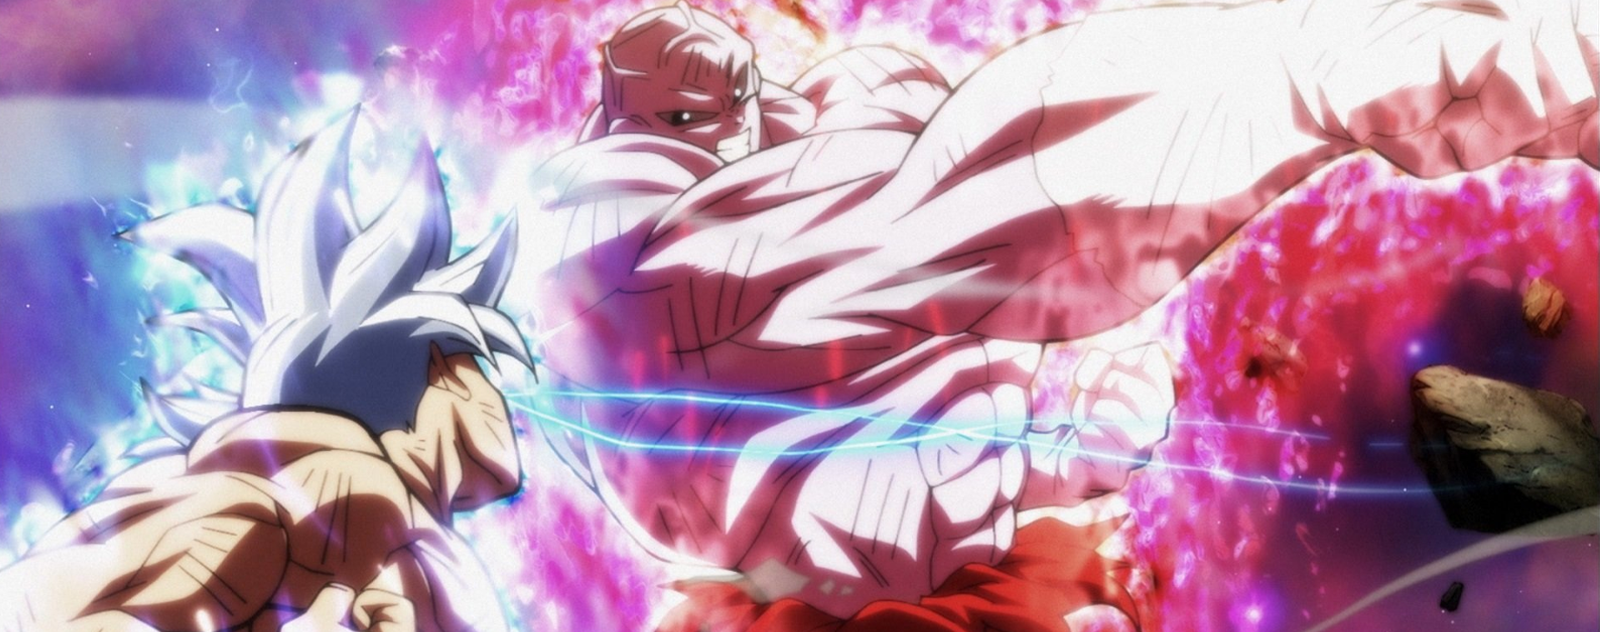 Ultra Instinct Jiren vs Goku